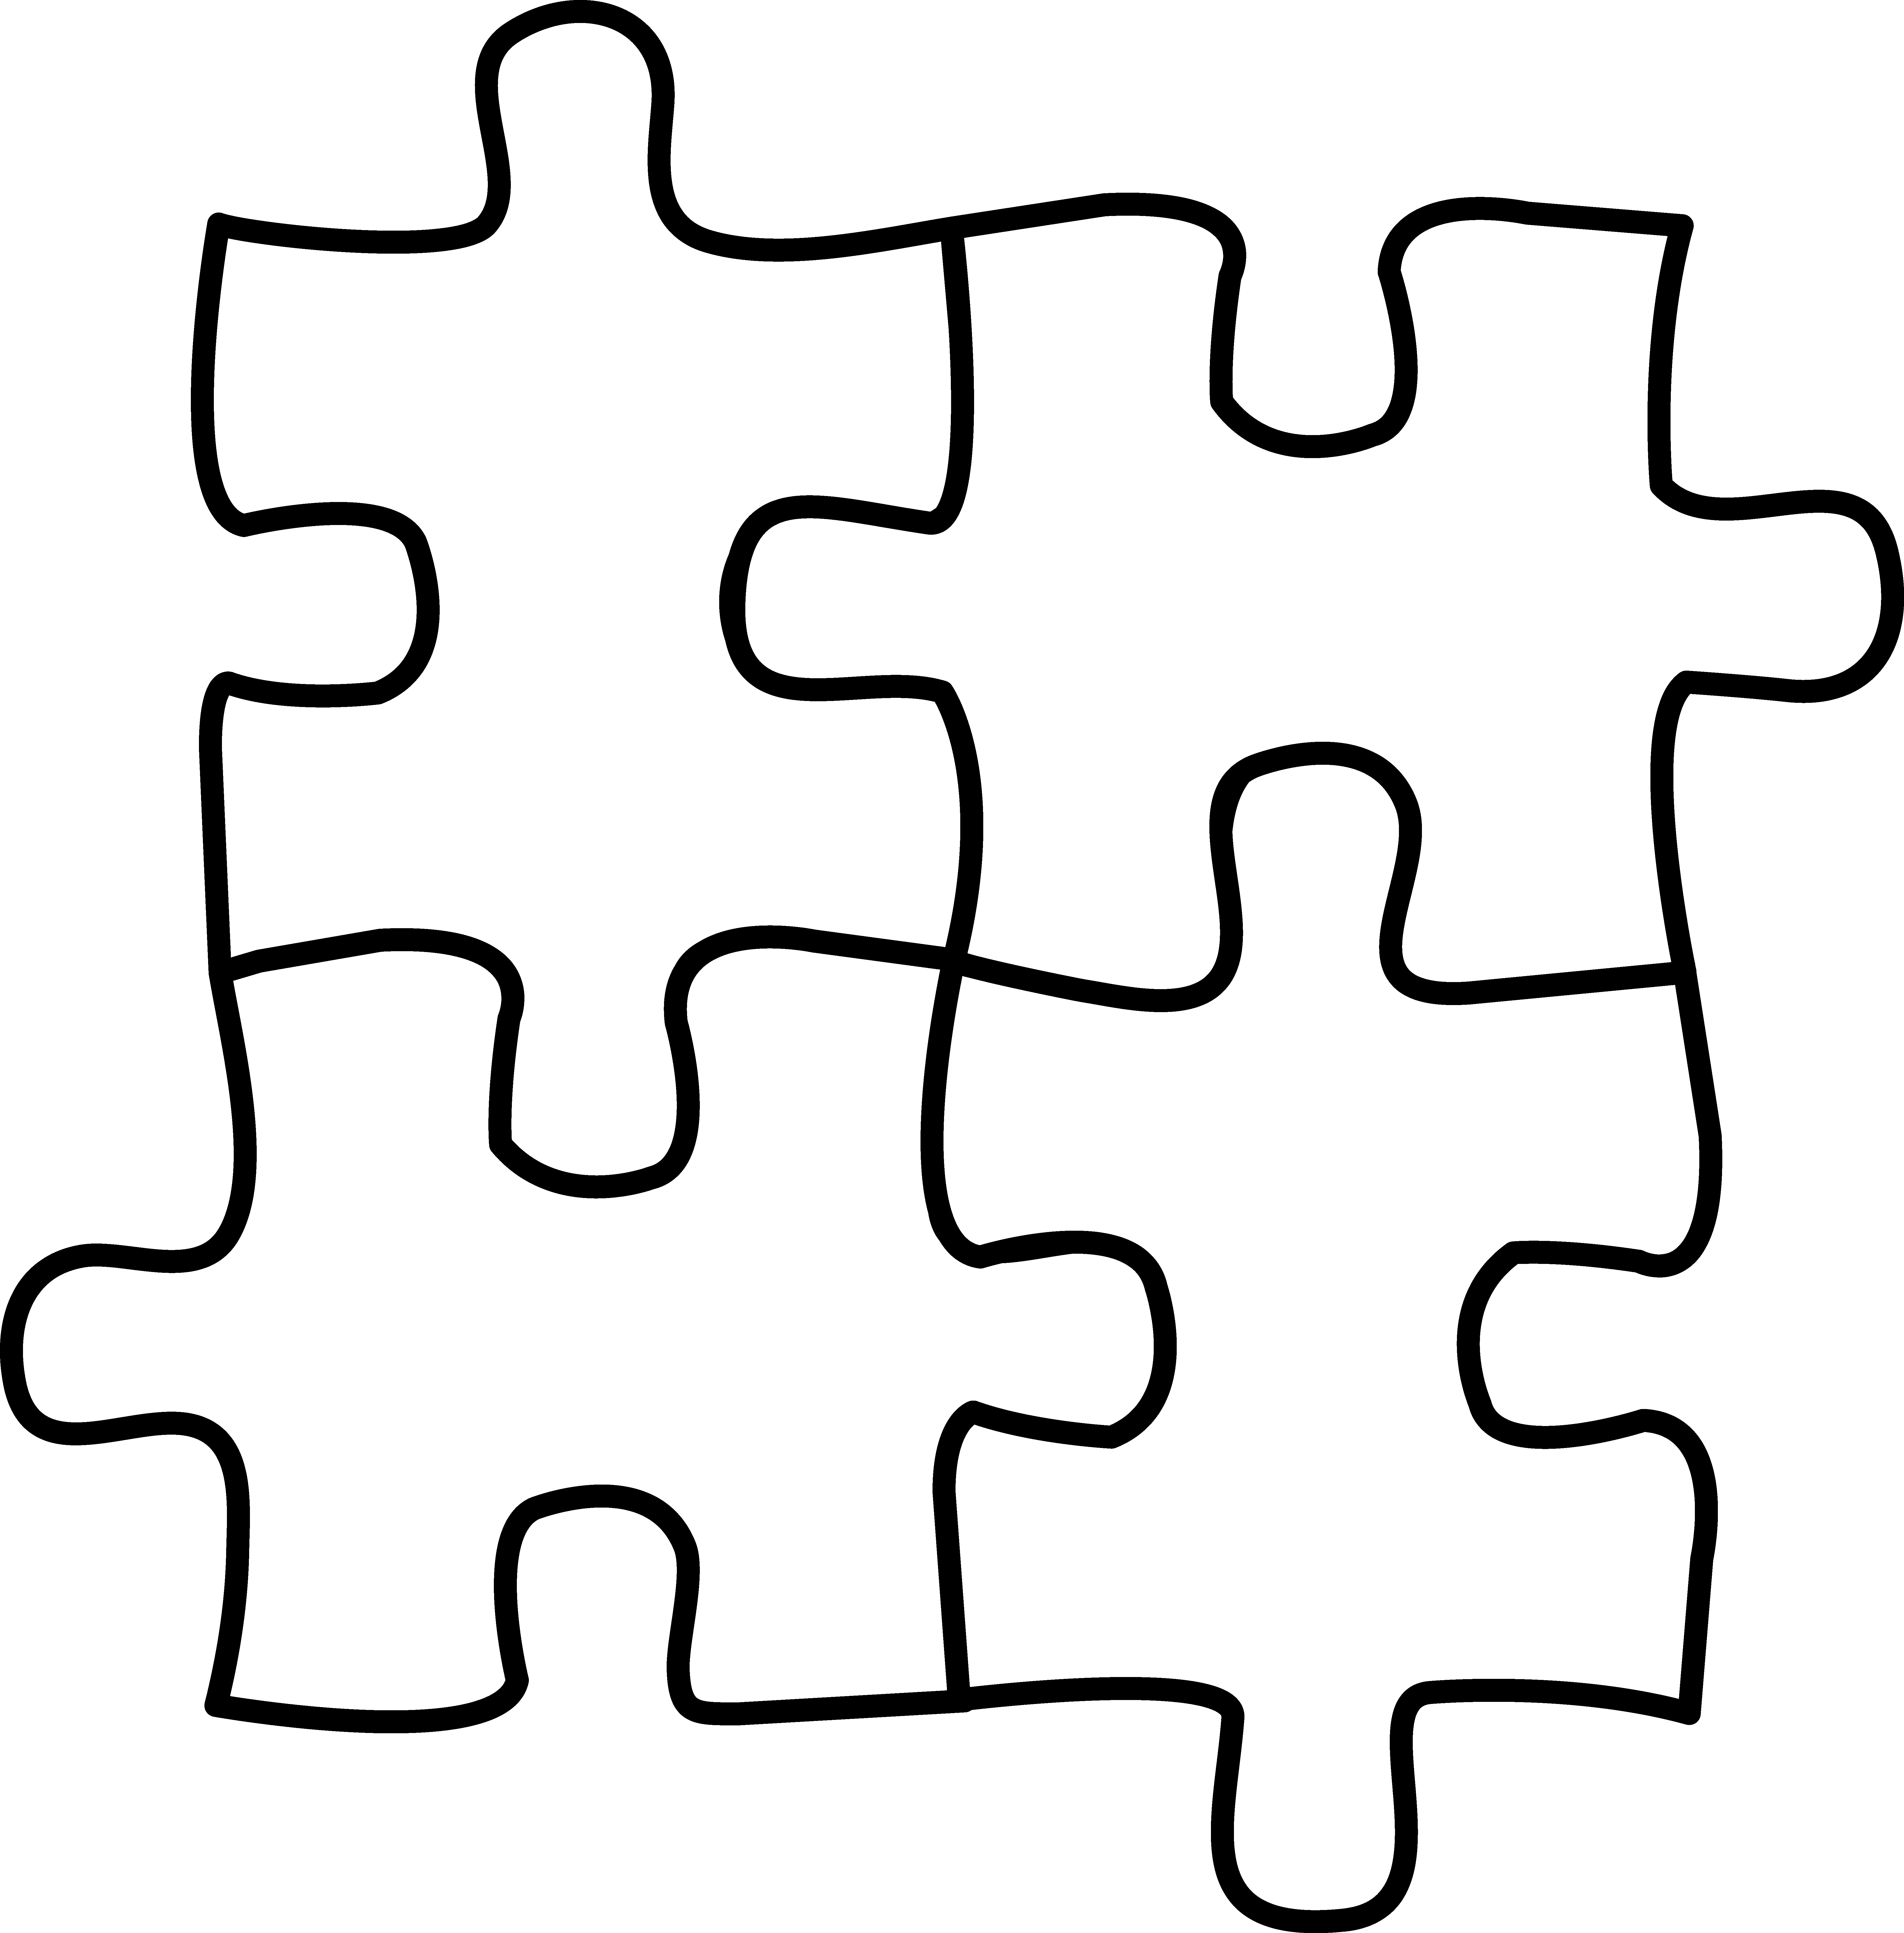 10 Pics Of Puzzle Piece Coloring Pages Of Letters Autism Puzzle